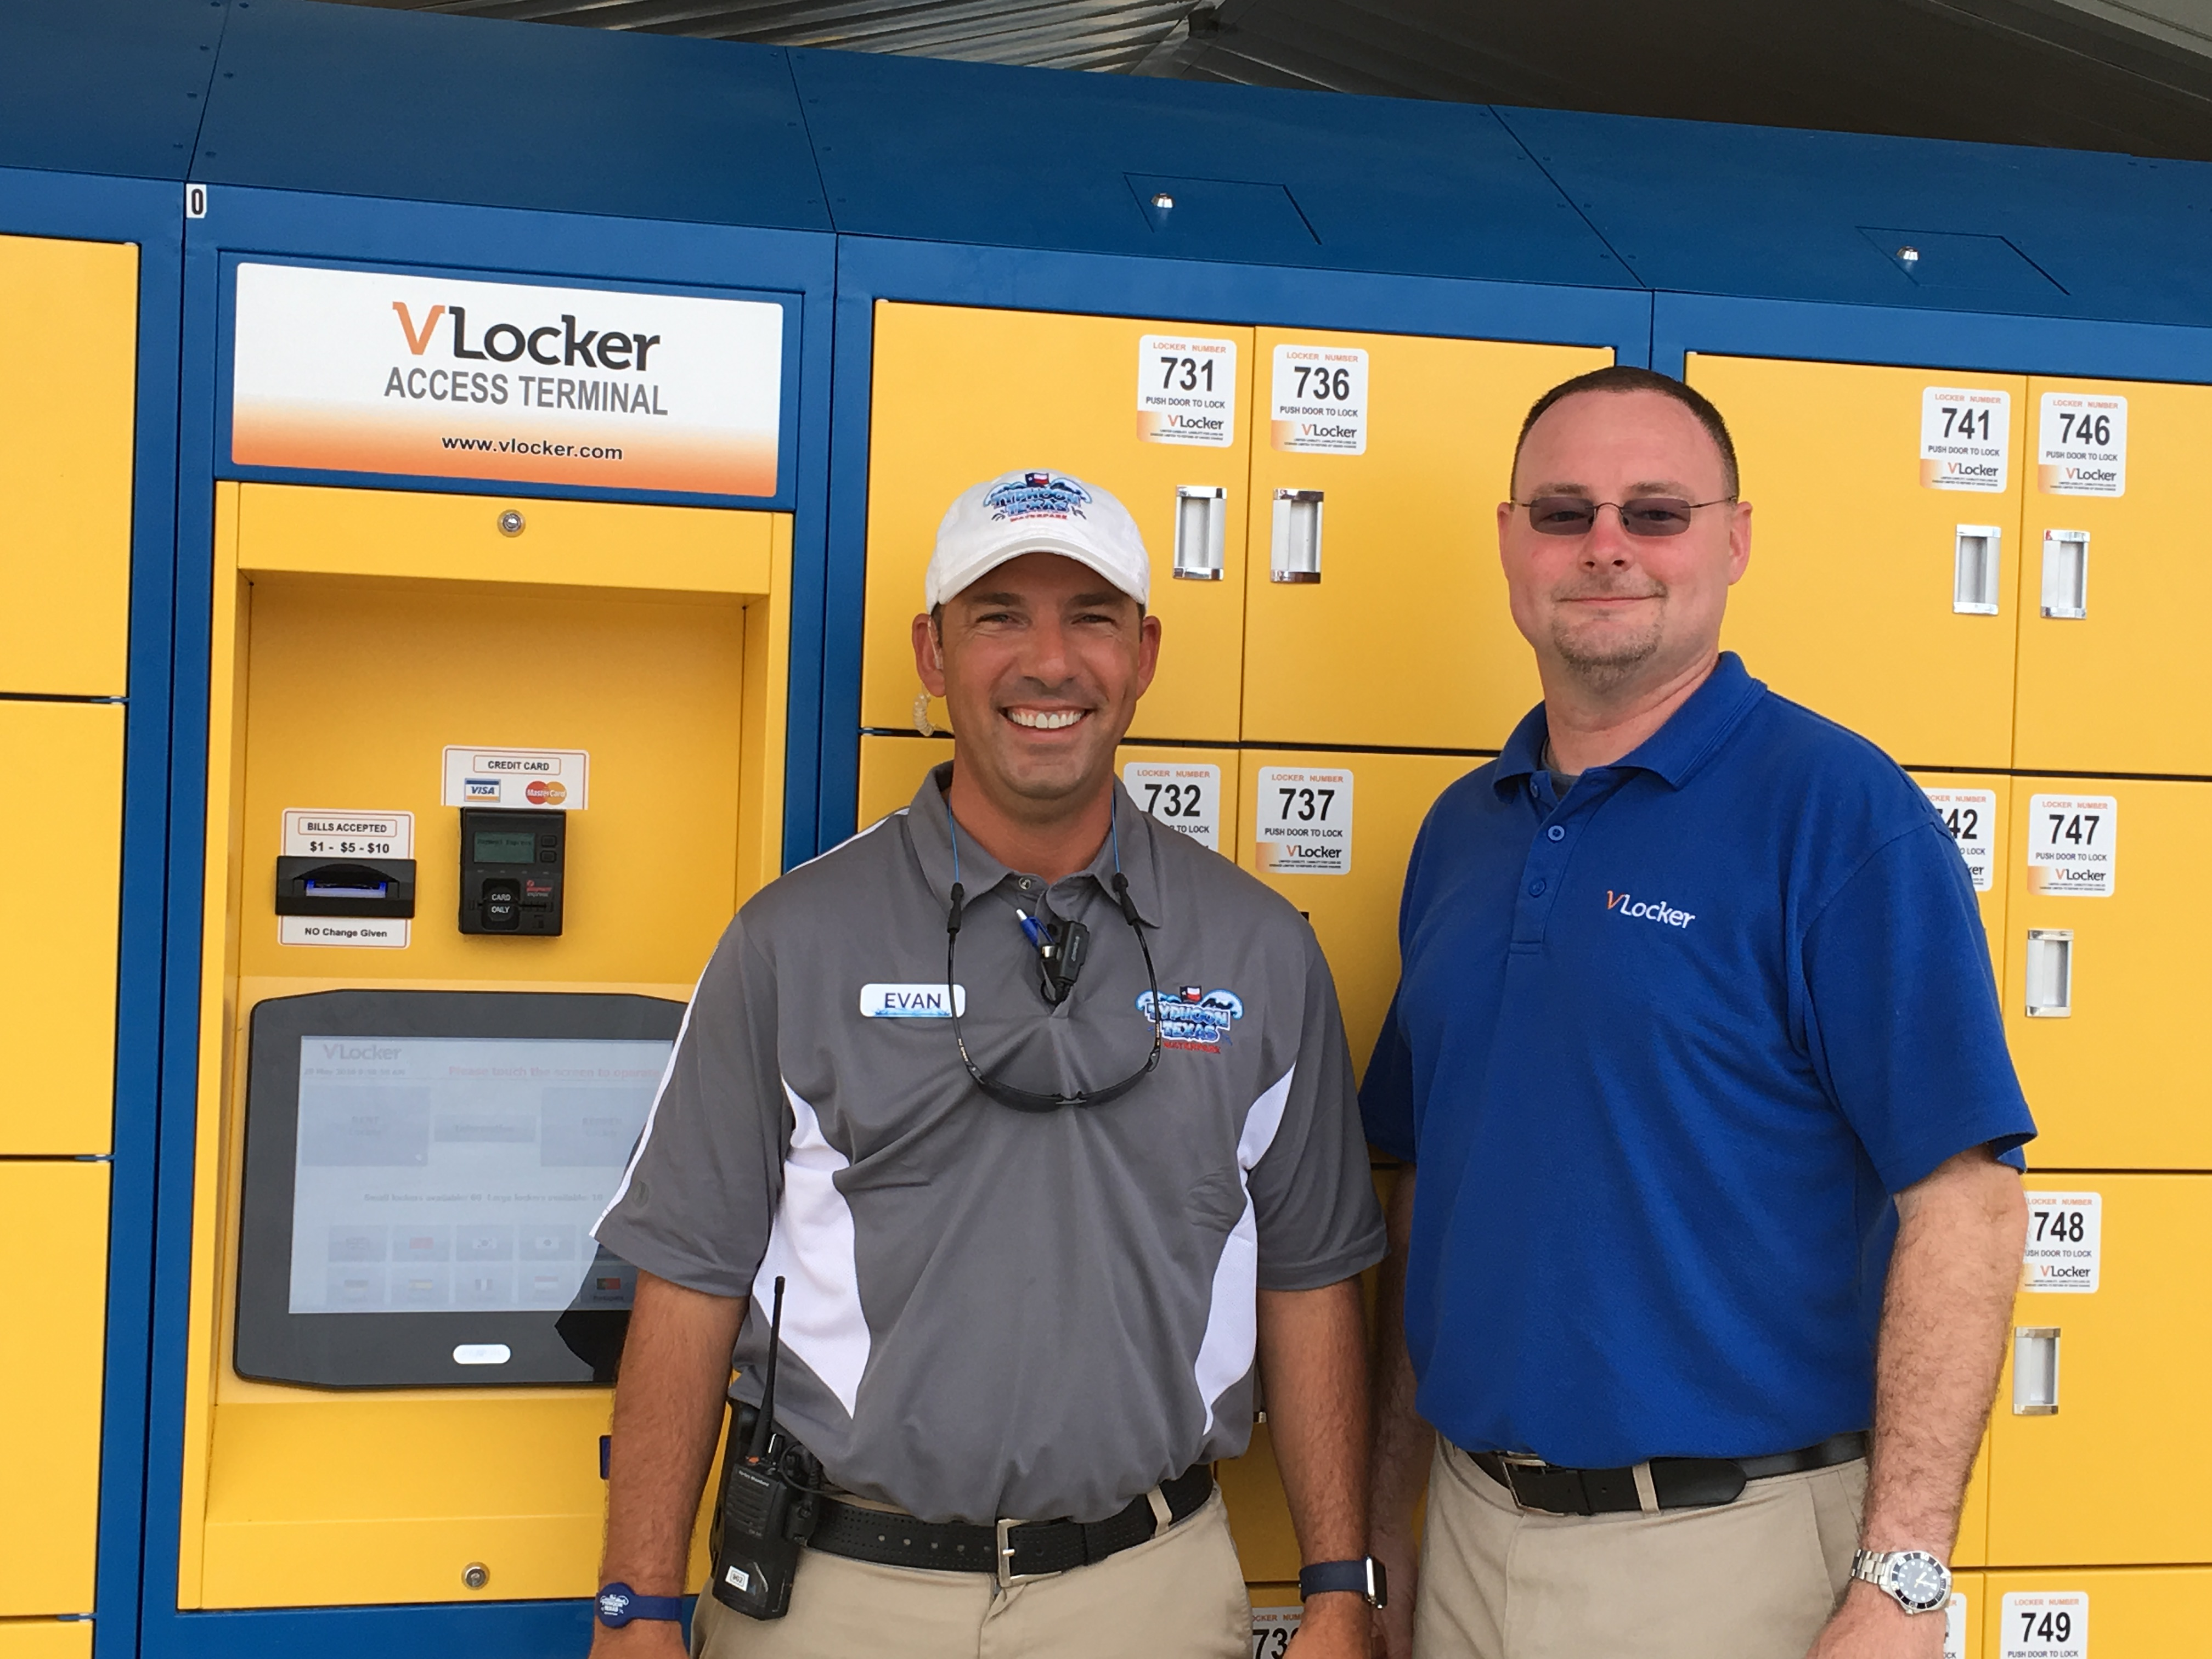 VLocker makes another splash in waterparks with Typhoon Texas